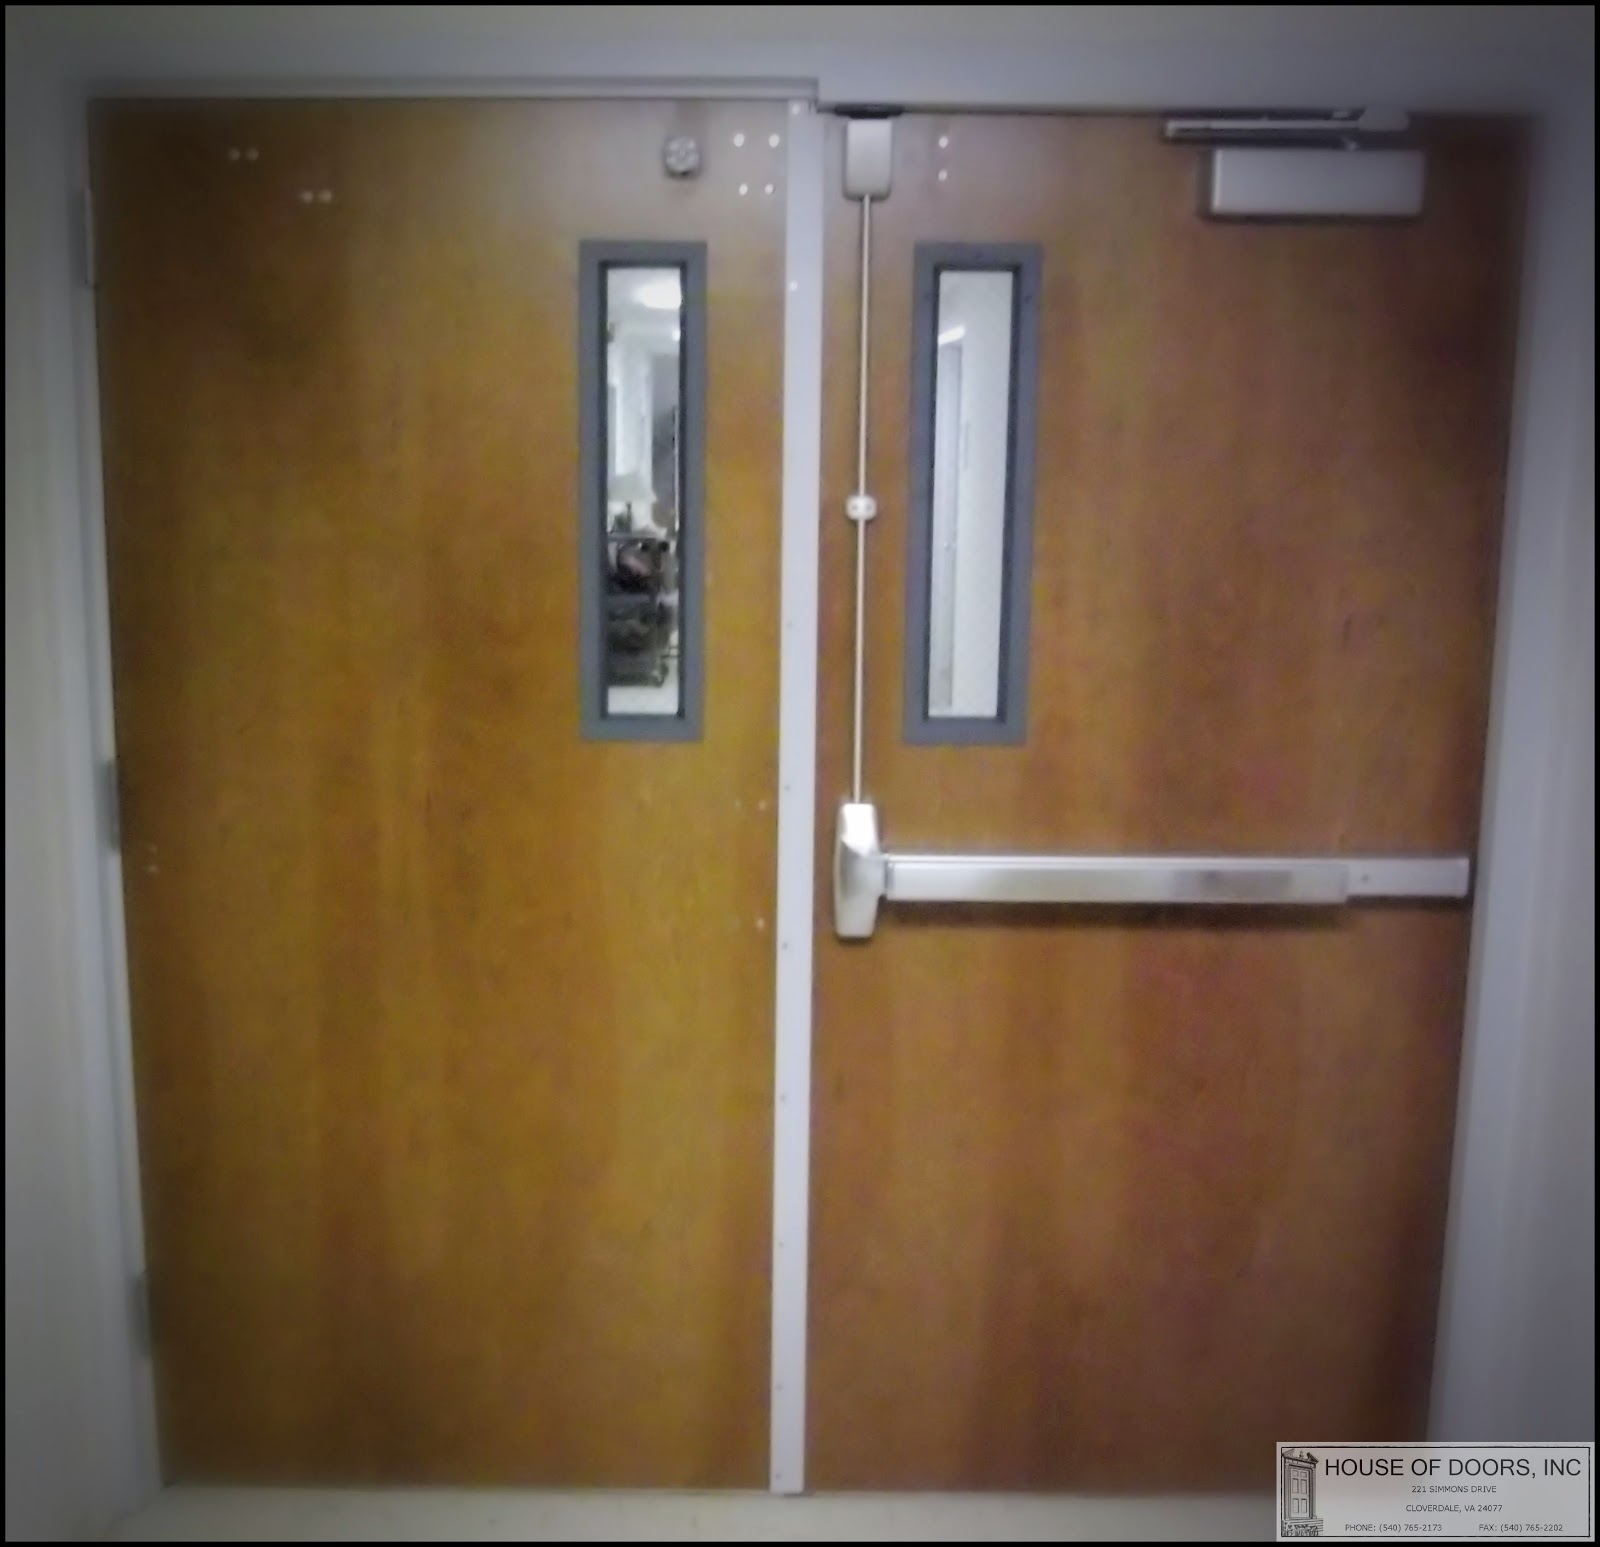 Double egress wood fire doors with fire hardware supplied and installed by House of Doors - Roanoke VA & Double egress wood fire doors with fire hardware supplied and ...